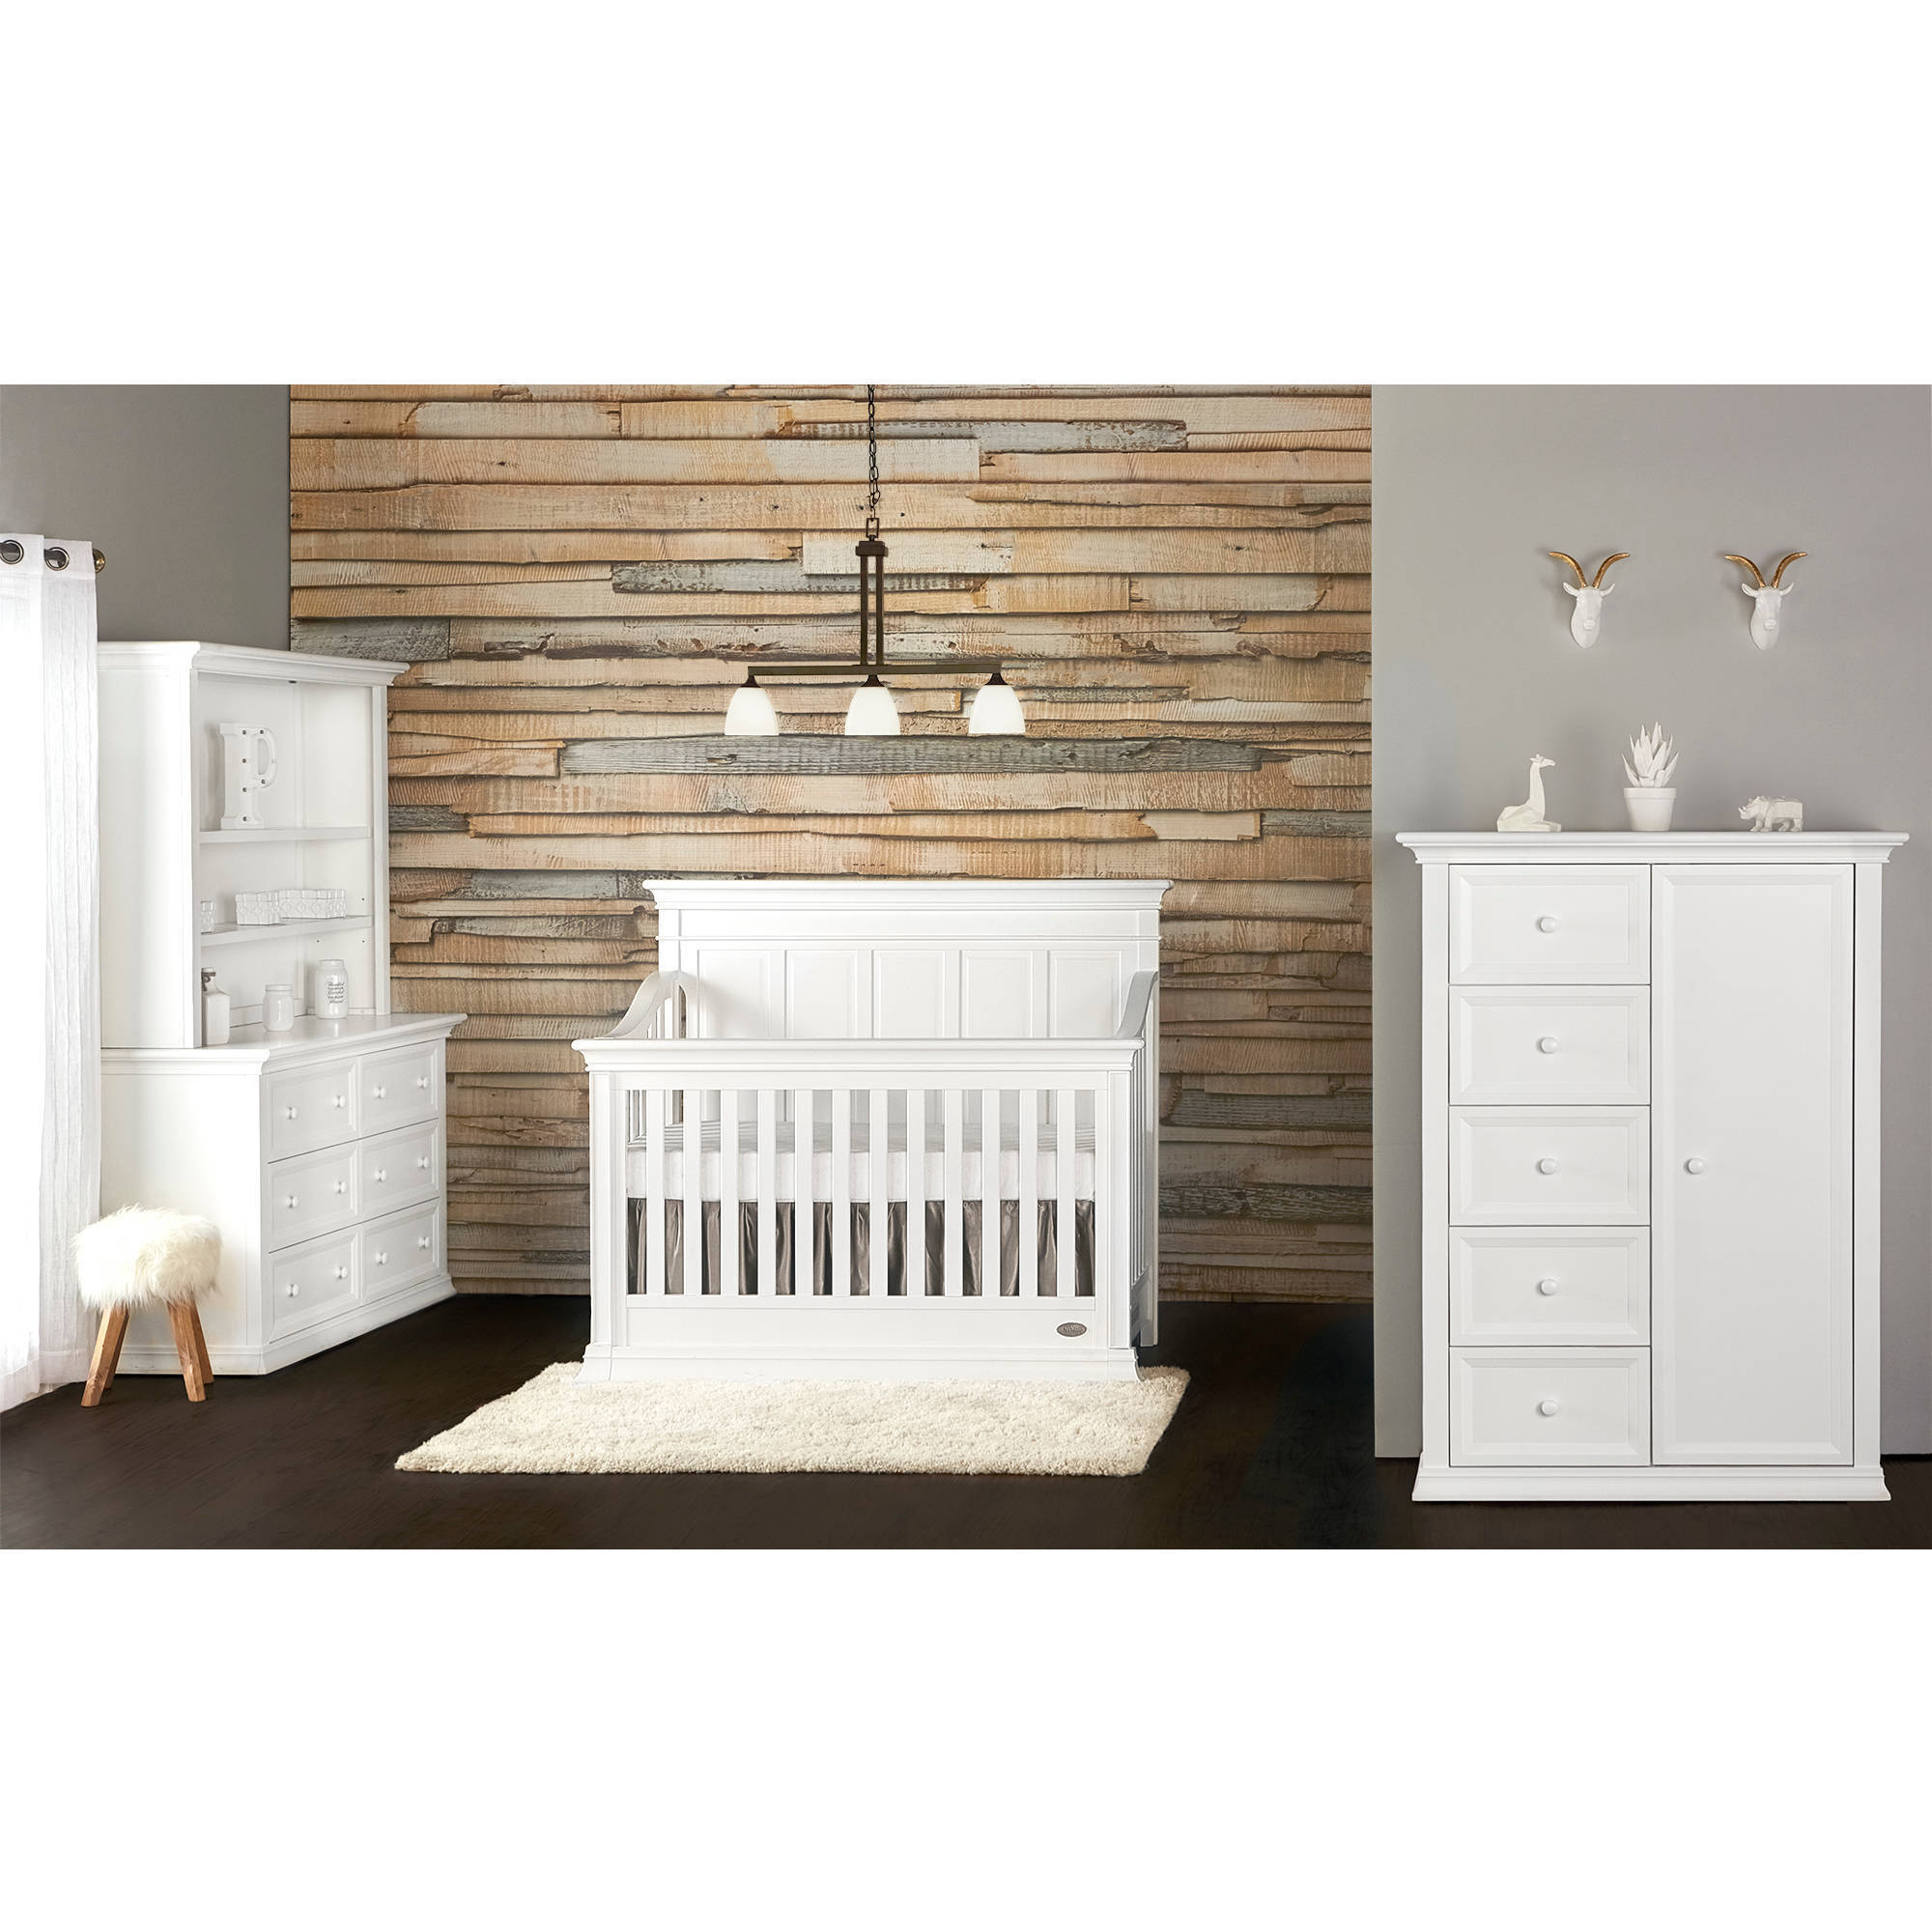 Evolur Napoli 5 in 1 Convertible Crib, Choose Your Finish